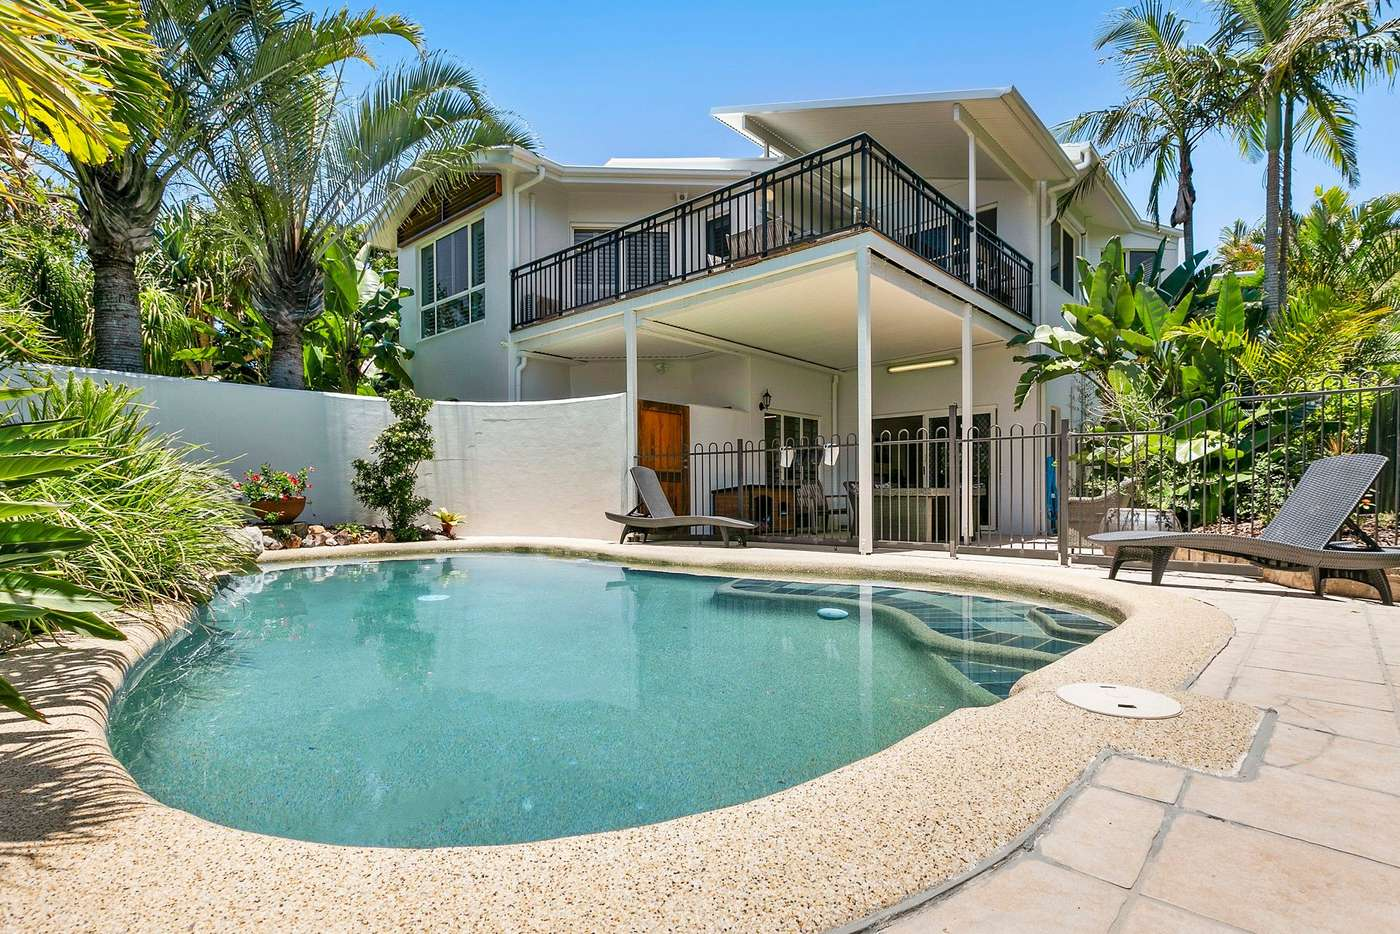 Main view of Homely house listing, 59 Wavecrest Drive, Castaways Beach QLD 4567